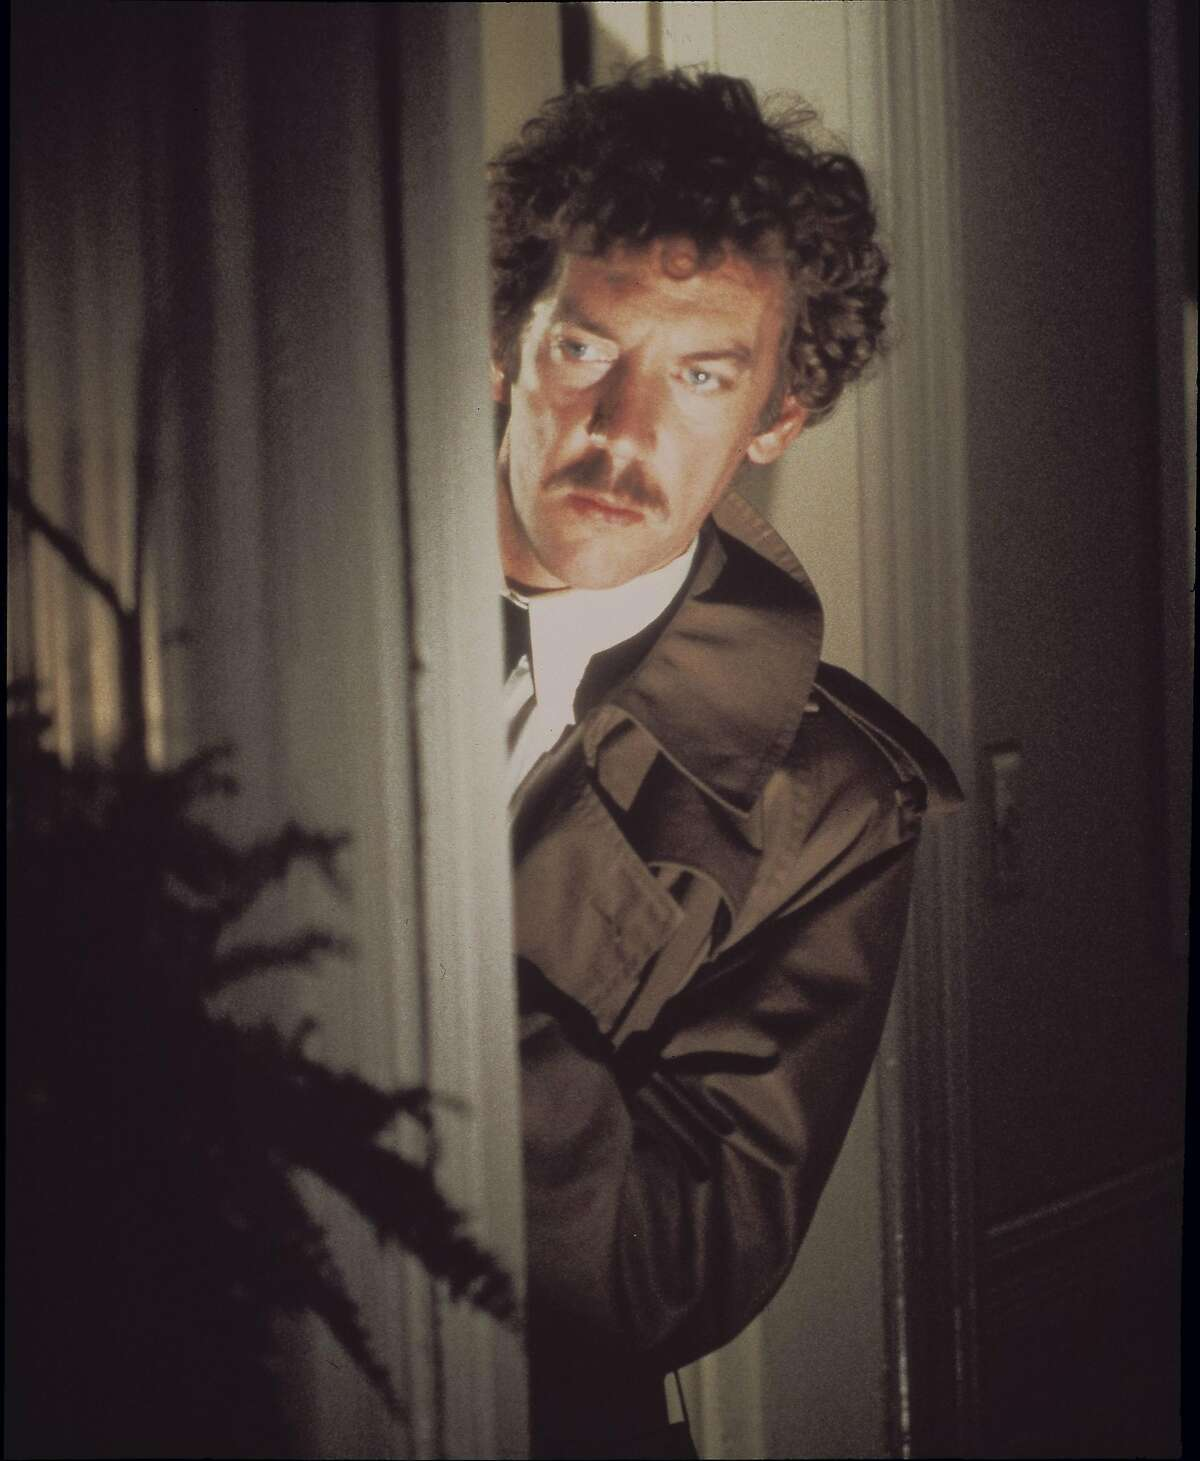 Donald Sutherland in the 1978 movie,